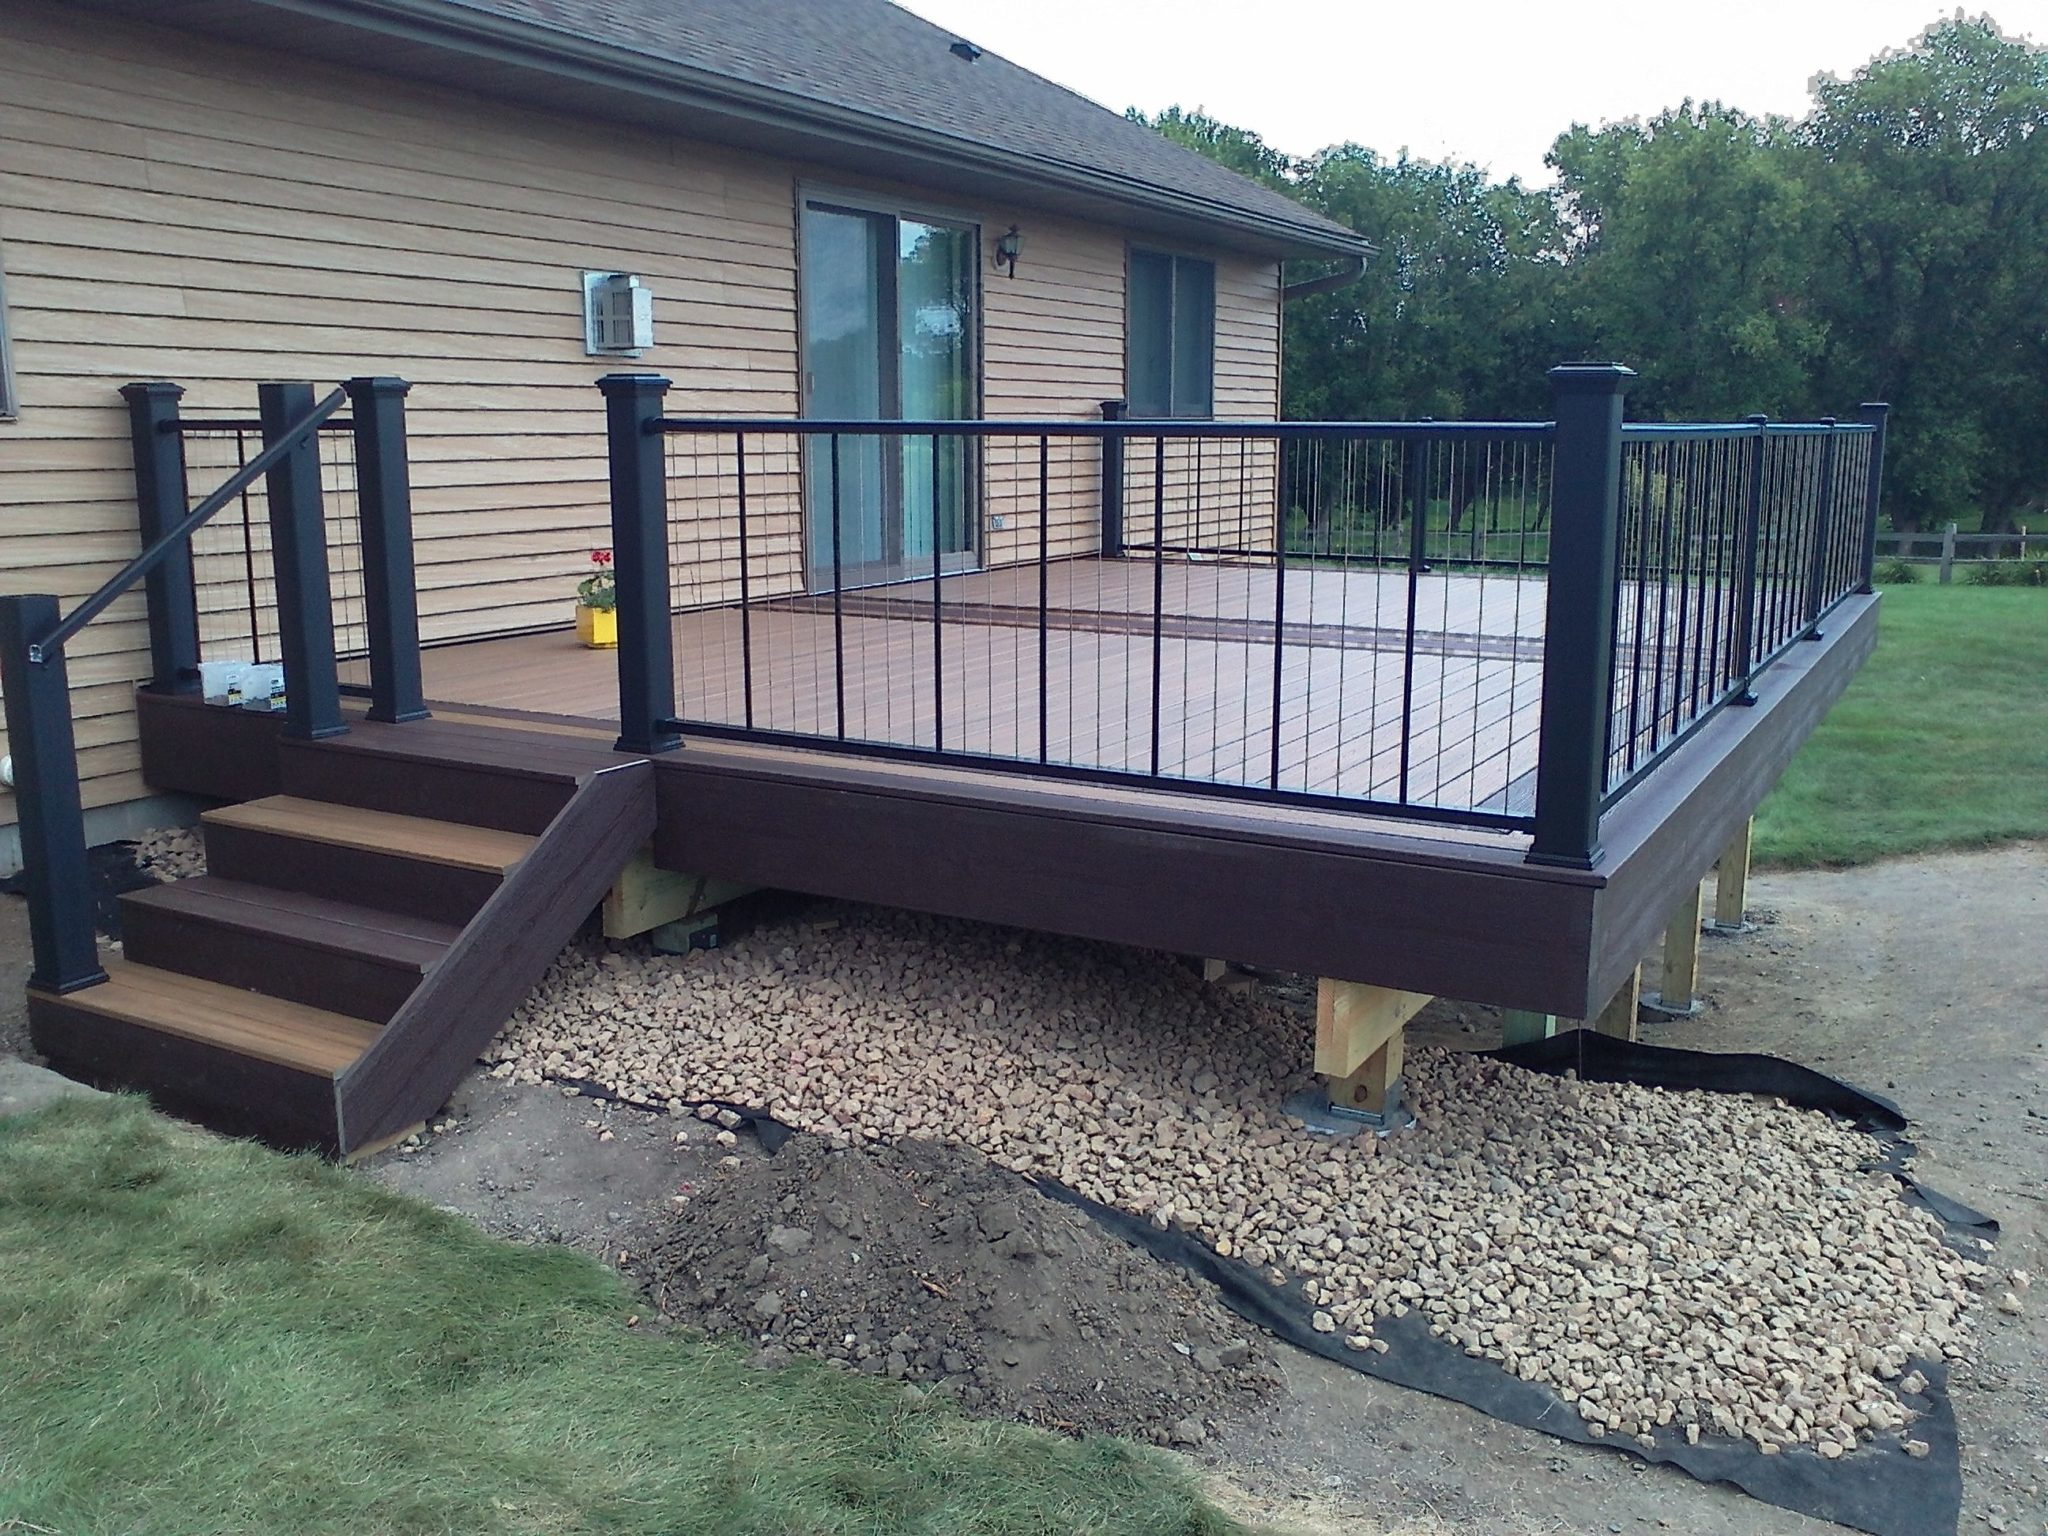 mankato-deck-and-railing-123334